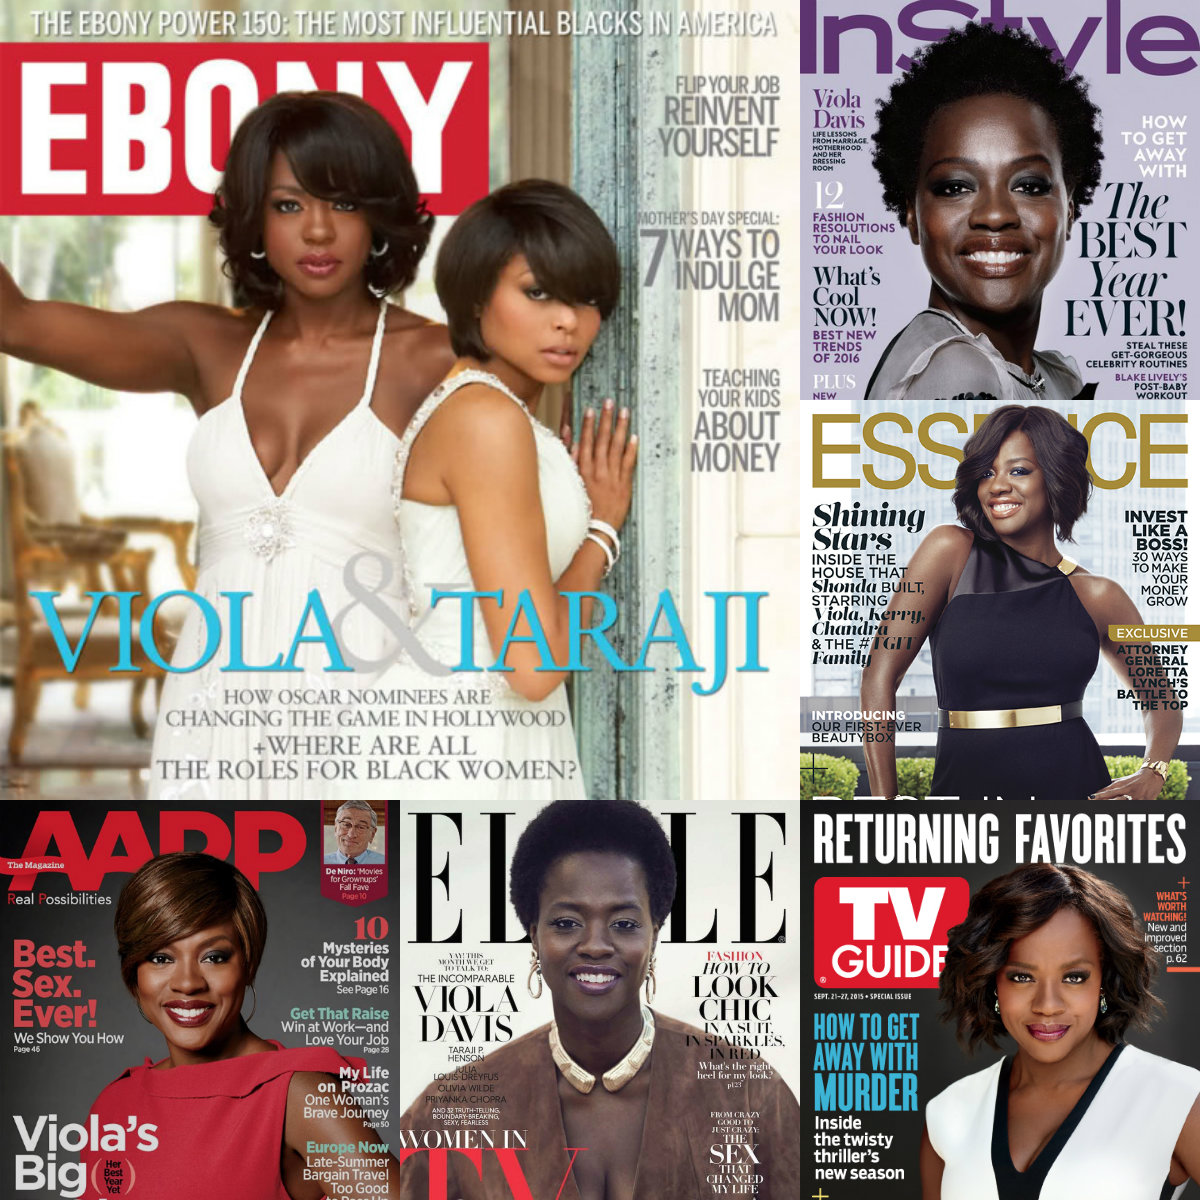 Award winning,  Juilliard alum, Viola Davis